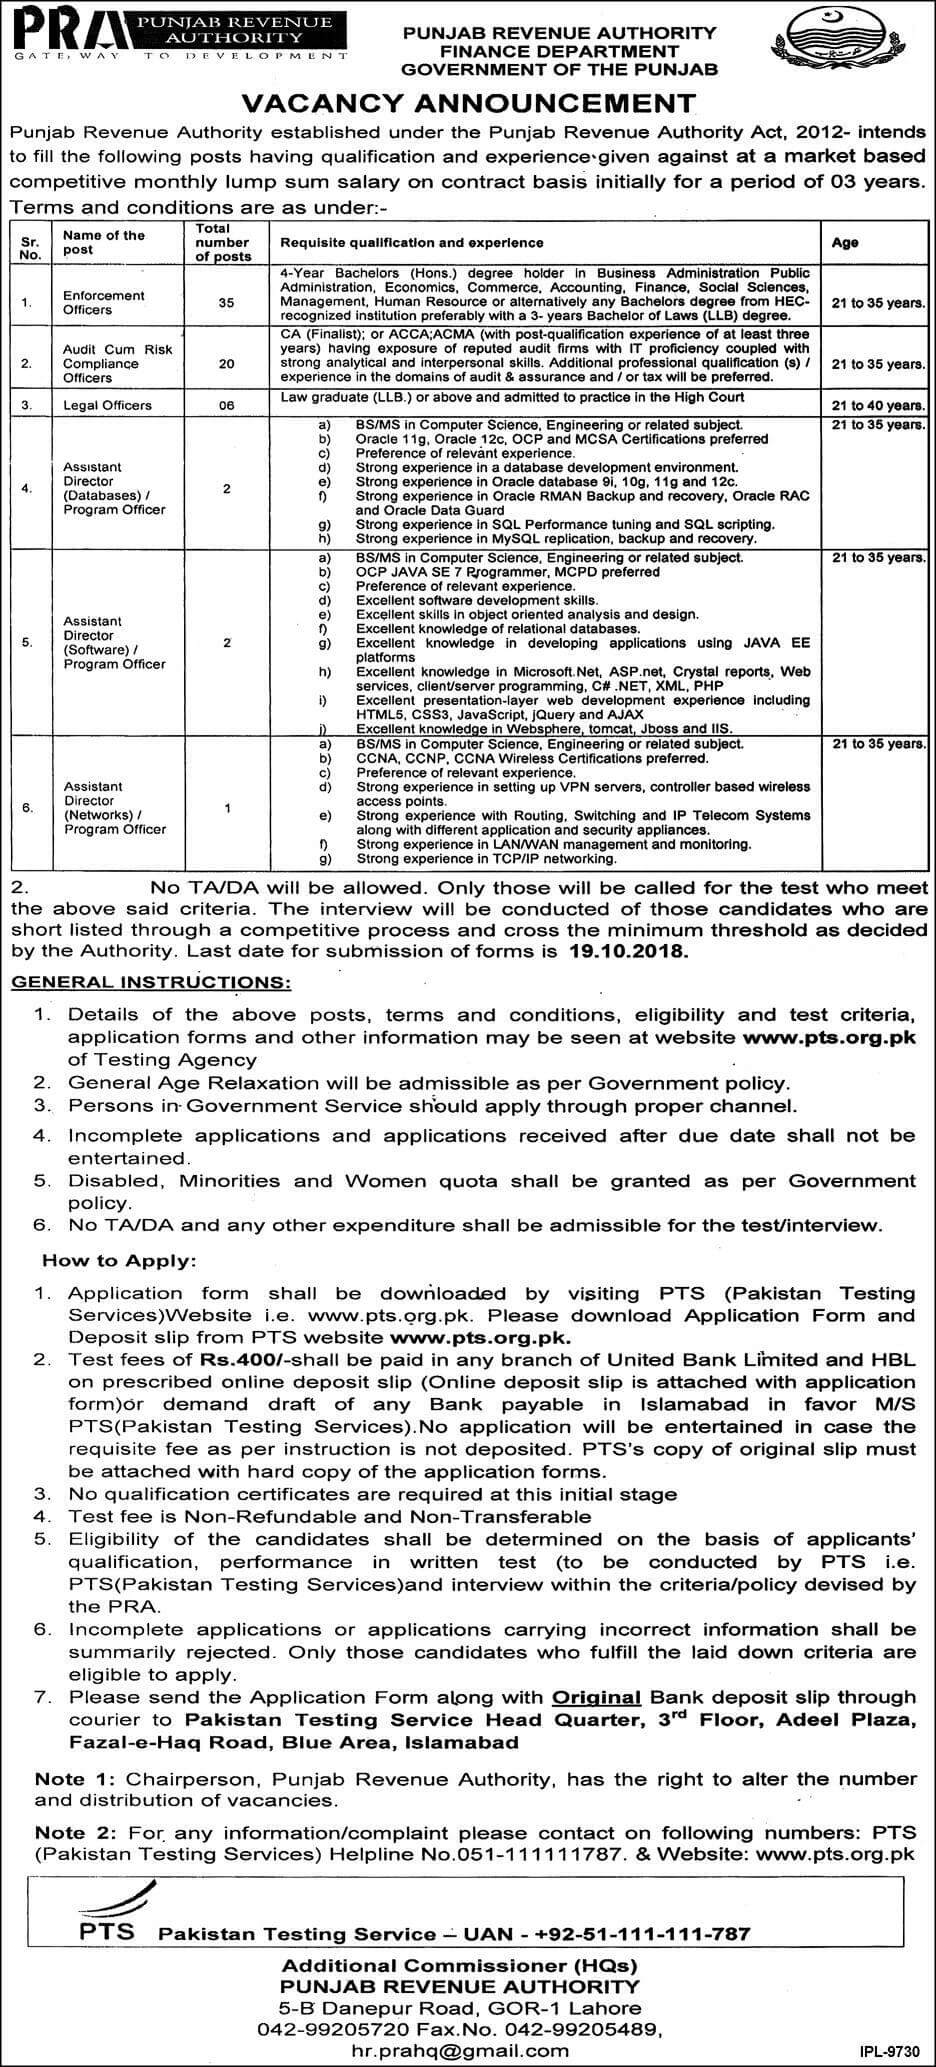 Punjab Revenue Authority Latest Jobs 2018 Government Jobs in Punjab on October, 2018 | Government